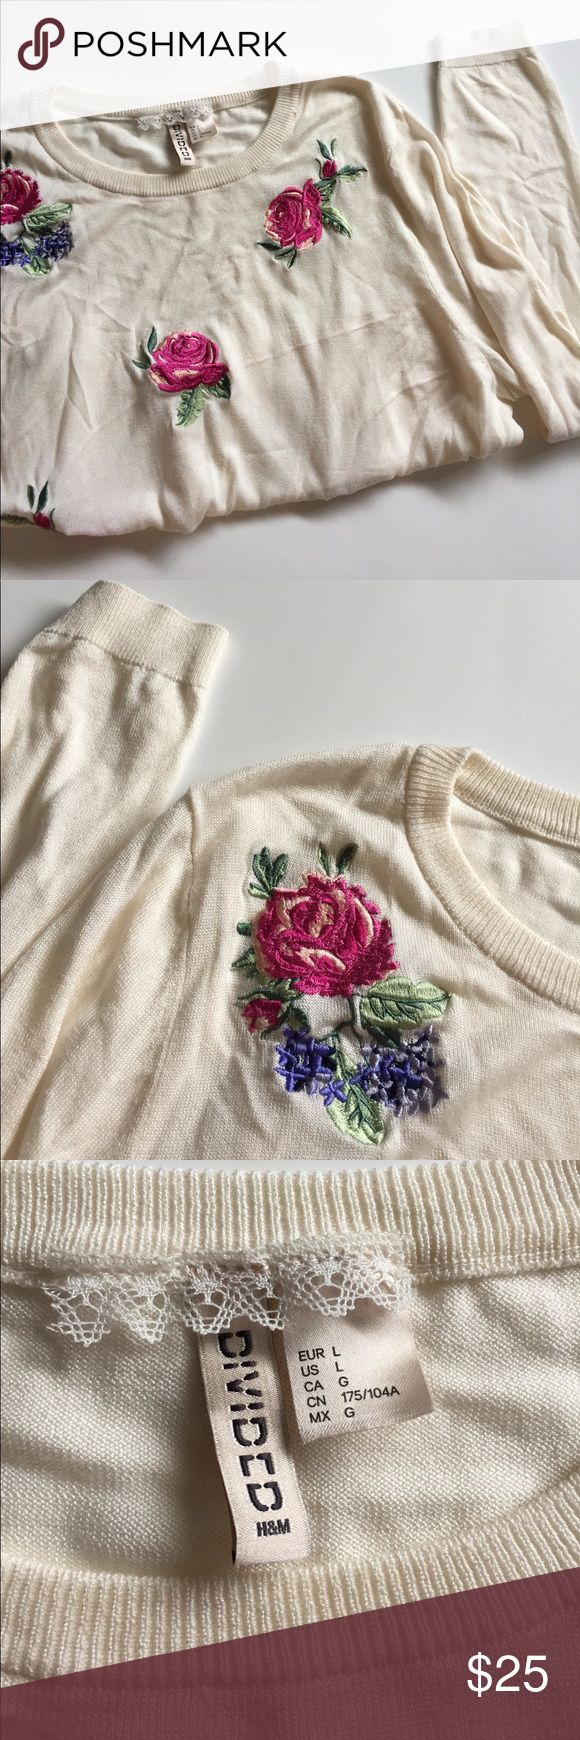 Floral Embroidered Cream Crop Top H&M Floral Embroidered cream colored long sleeve crop top , size large. Brand new , no flaws , no trades ! Perfect to pair with some high Waisted jeans and some converse for a cute spring look ❤️ H&M Tops Crop Tops